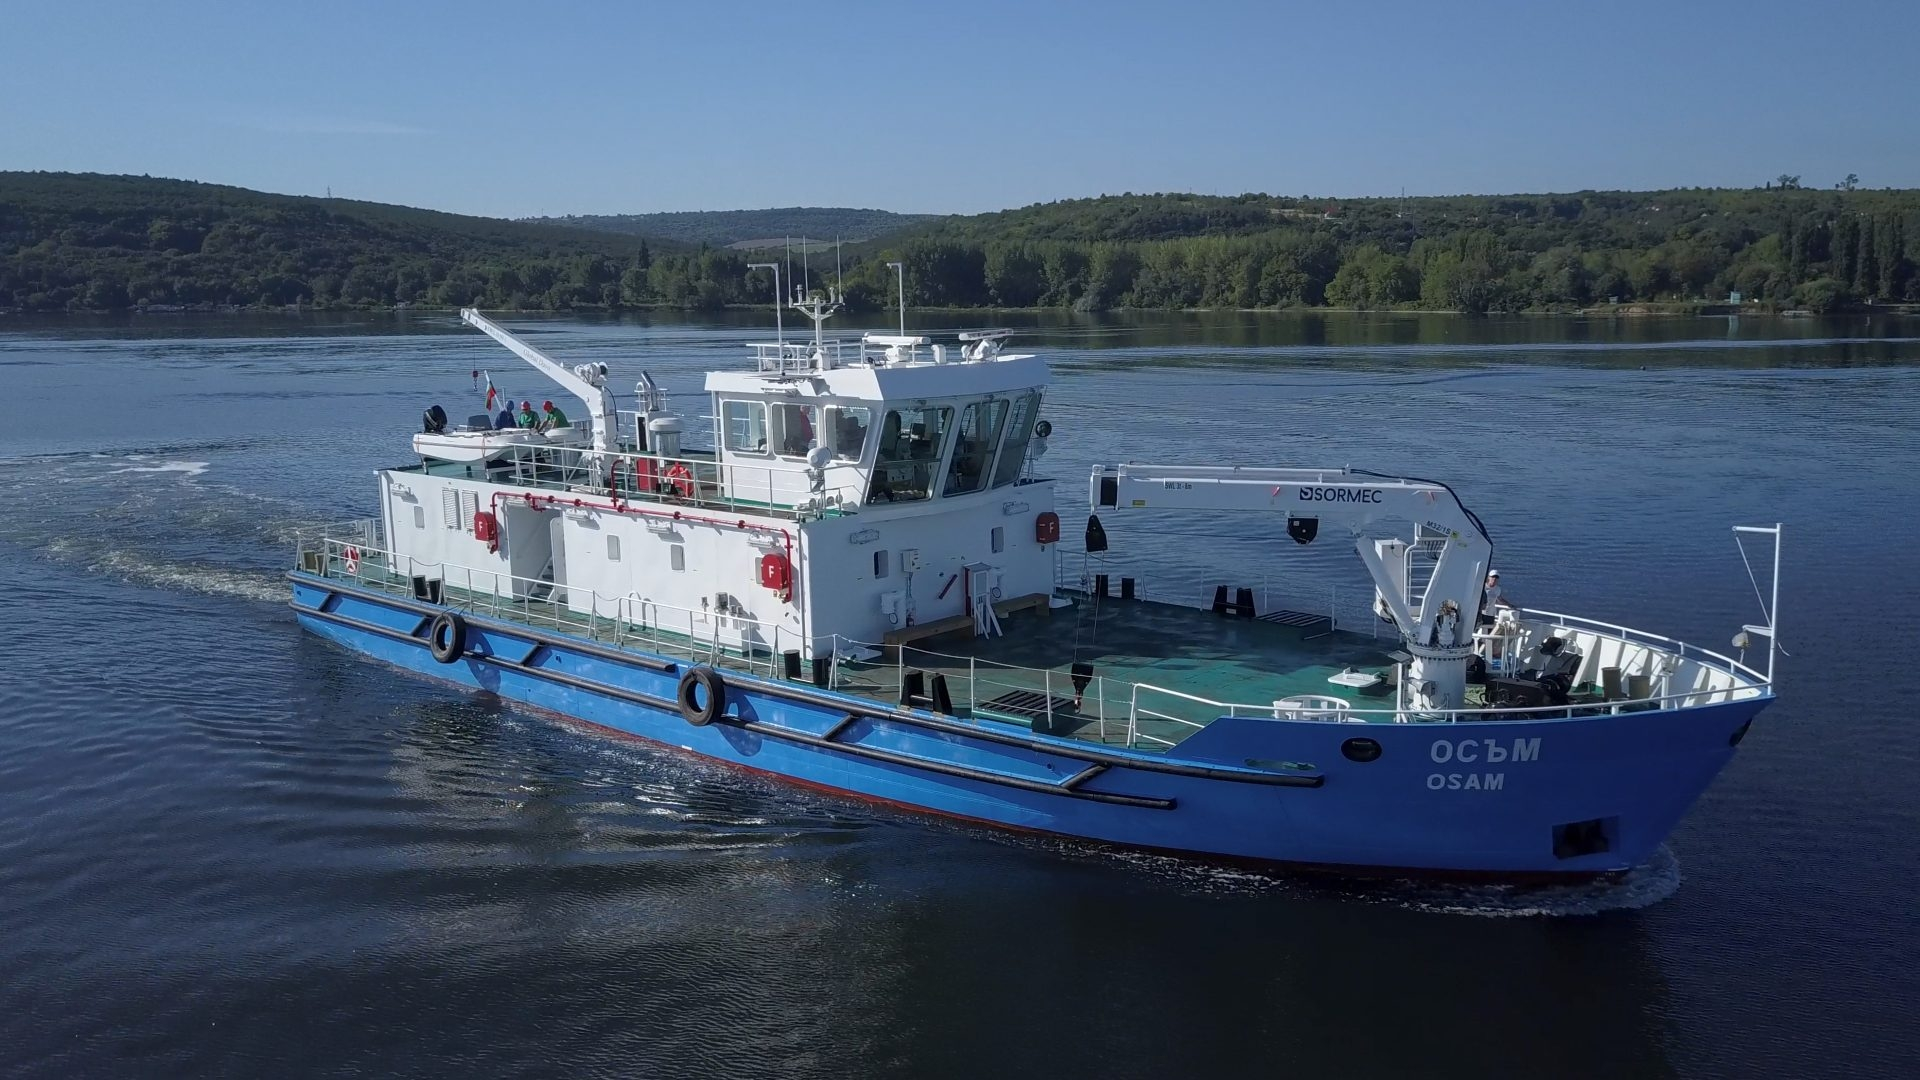 Executive Agency for Exploration and Maintenance of the Danube River's new vessel, Osam.